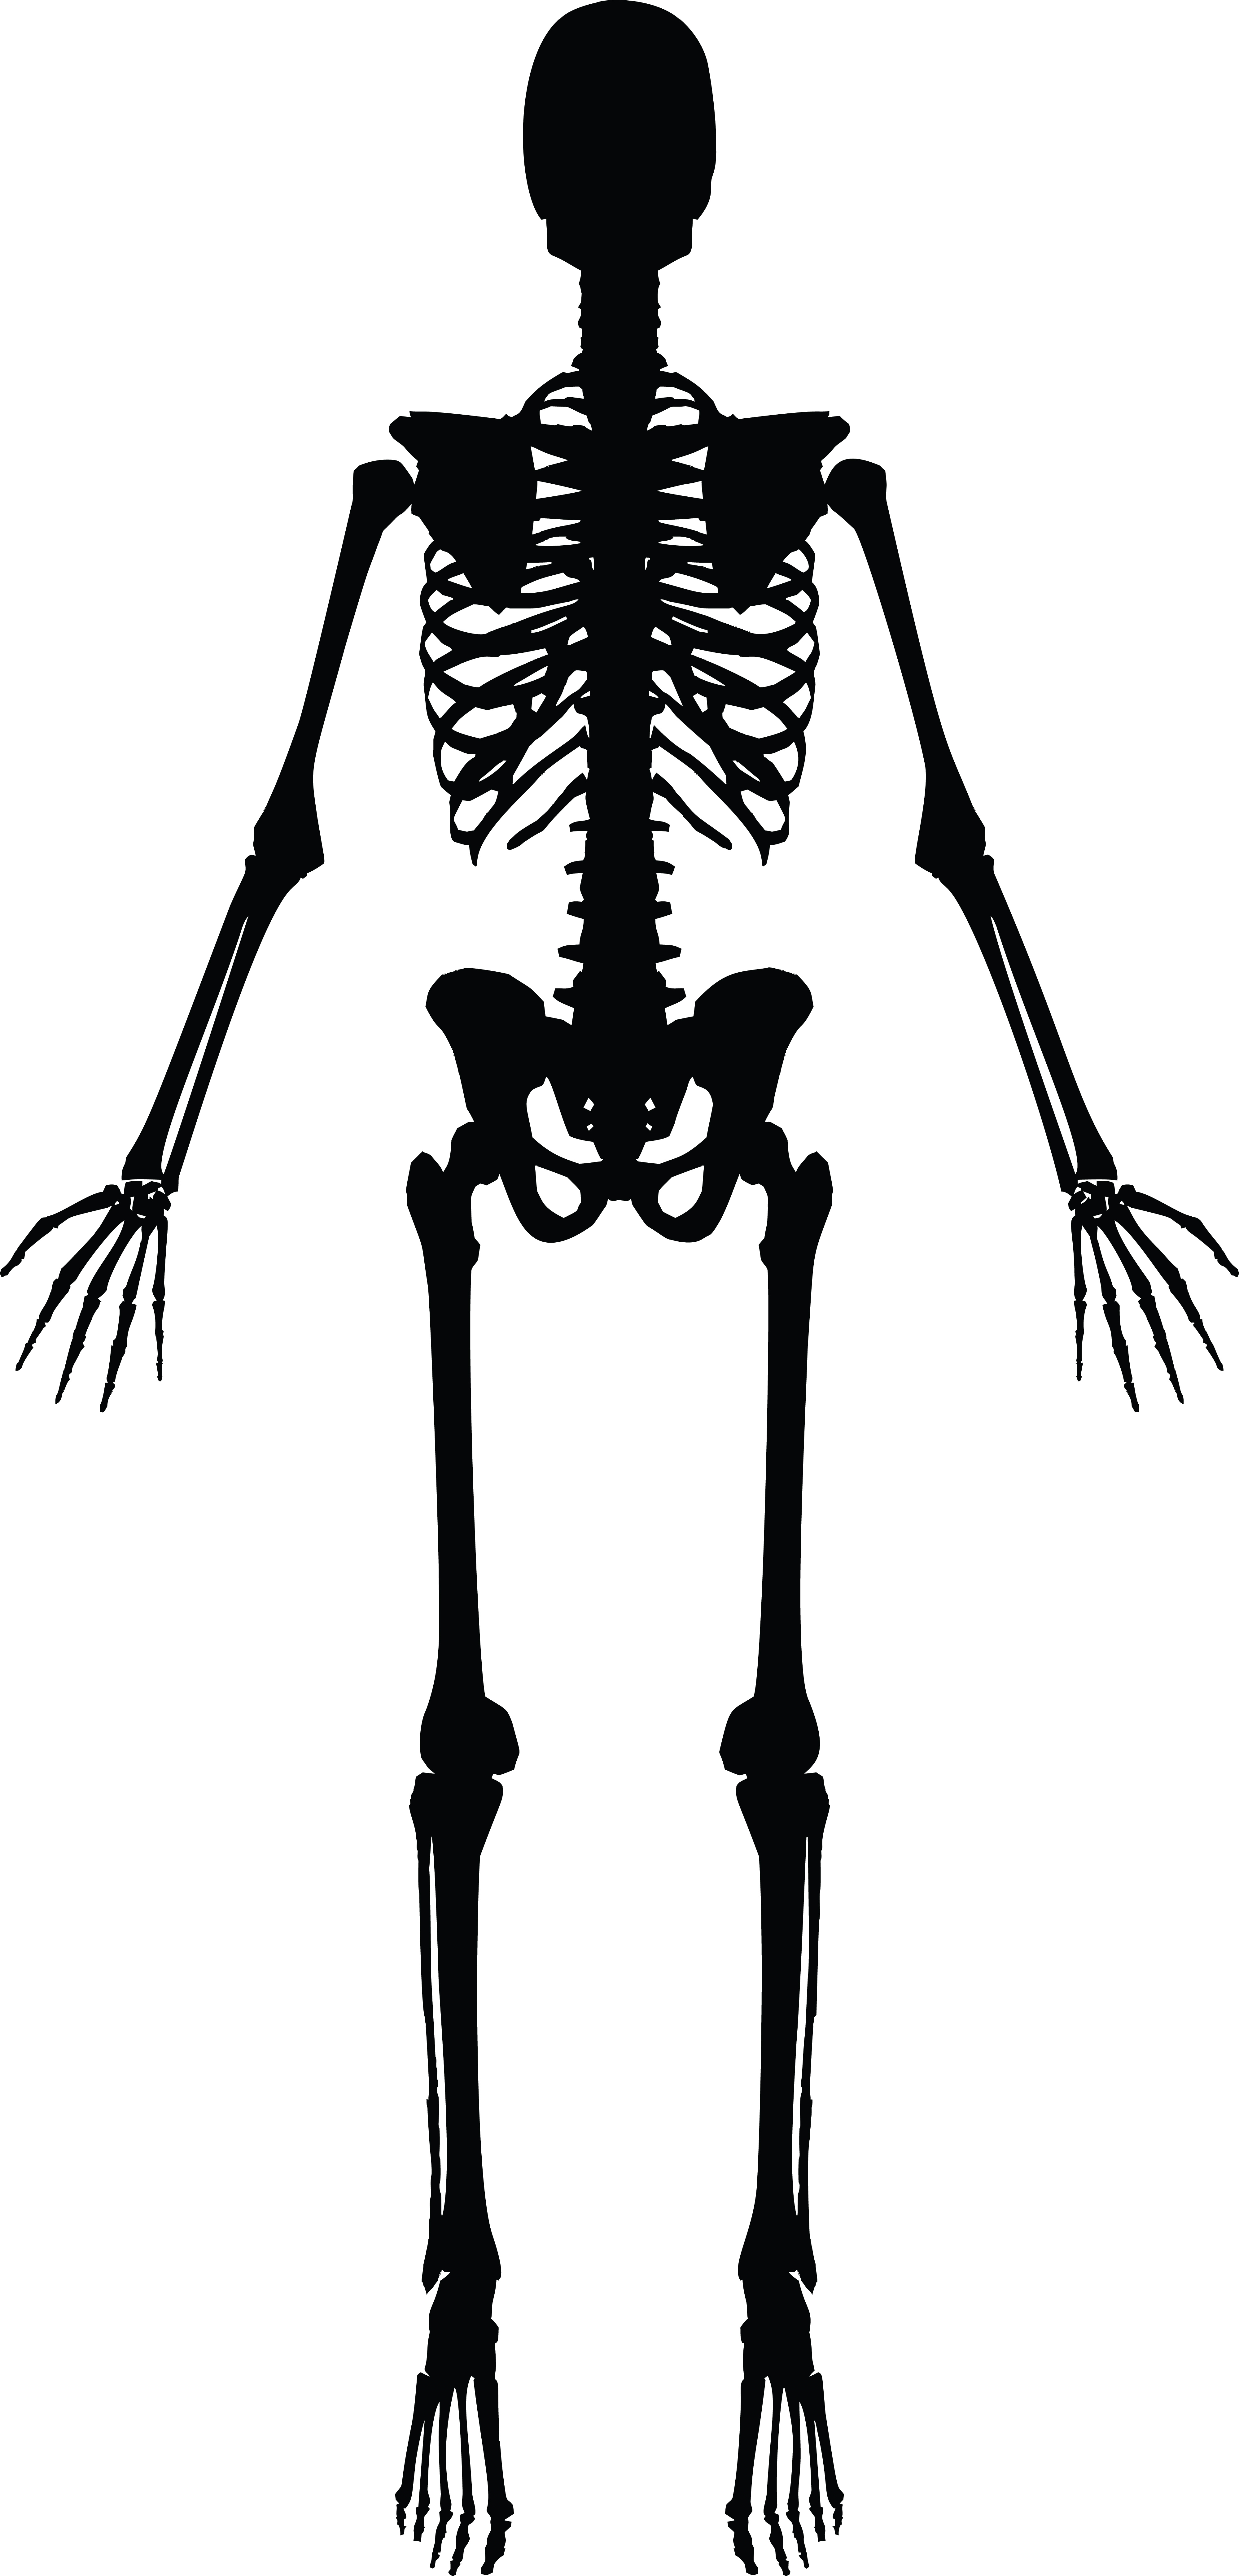 Free Clipart Of A Human Skeleton Black And White